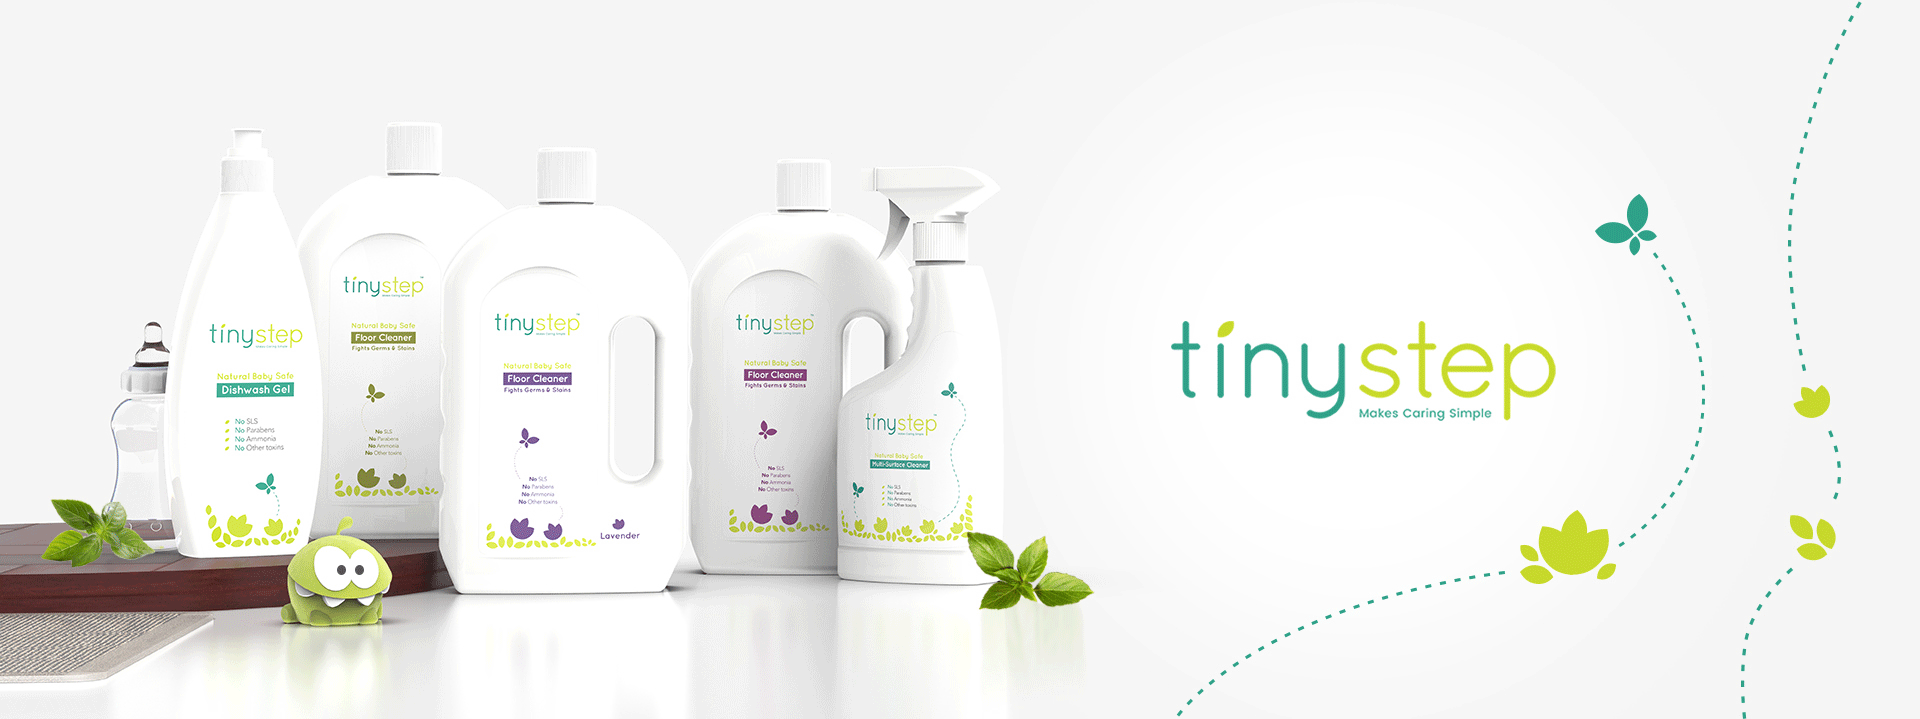 Brand Strategy & Design for Baby-care products - Tinystep